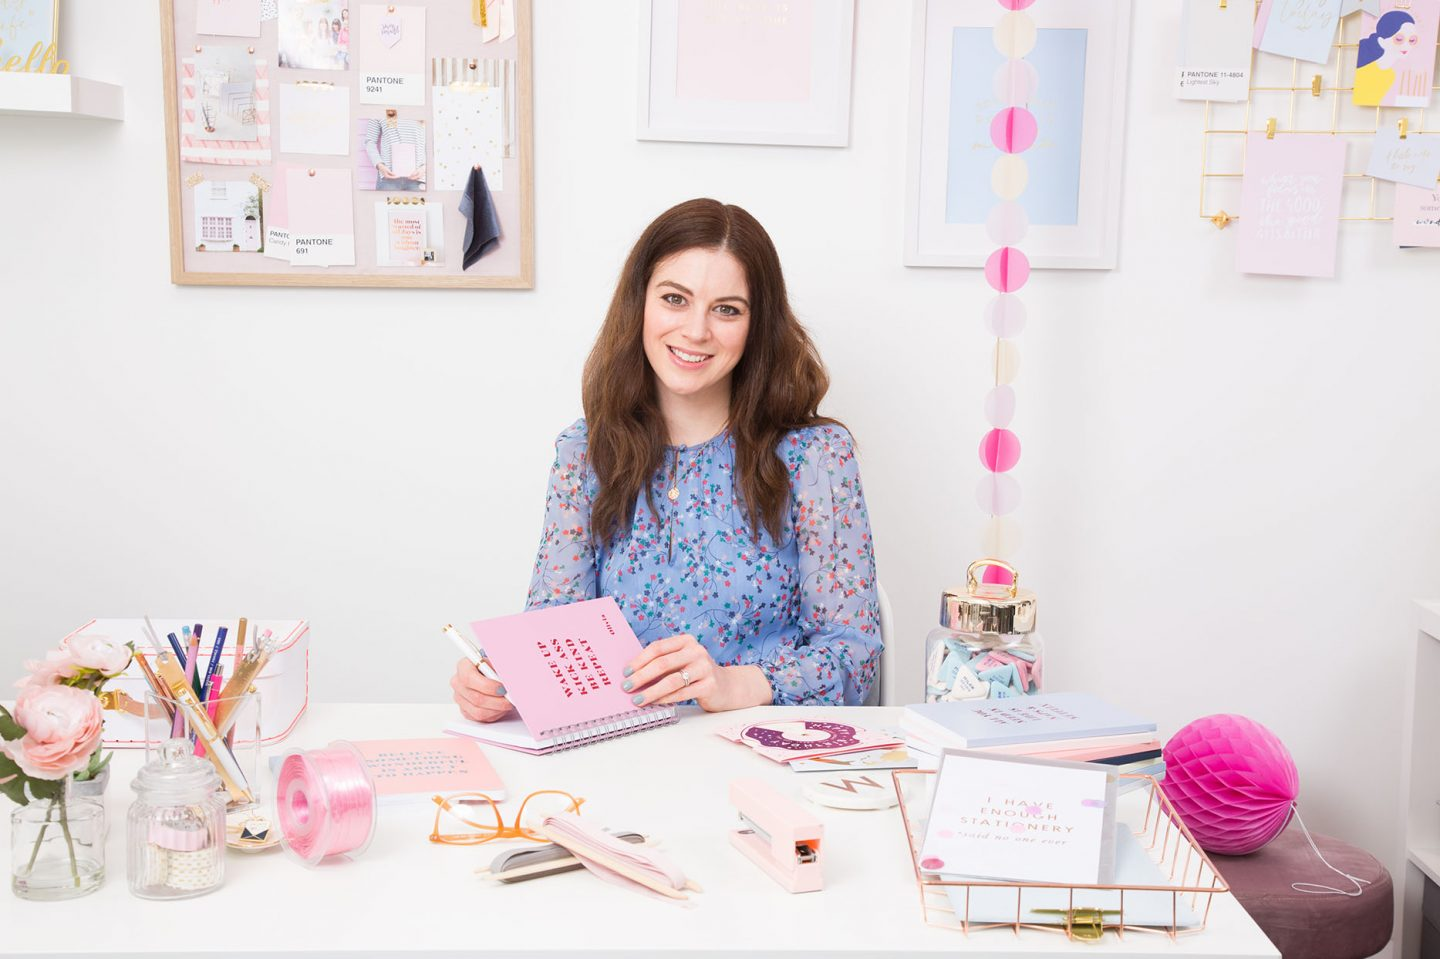 Martha Keith from Martha Brook London stationery, interviewed in the Homeworker magazine